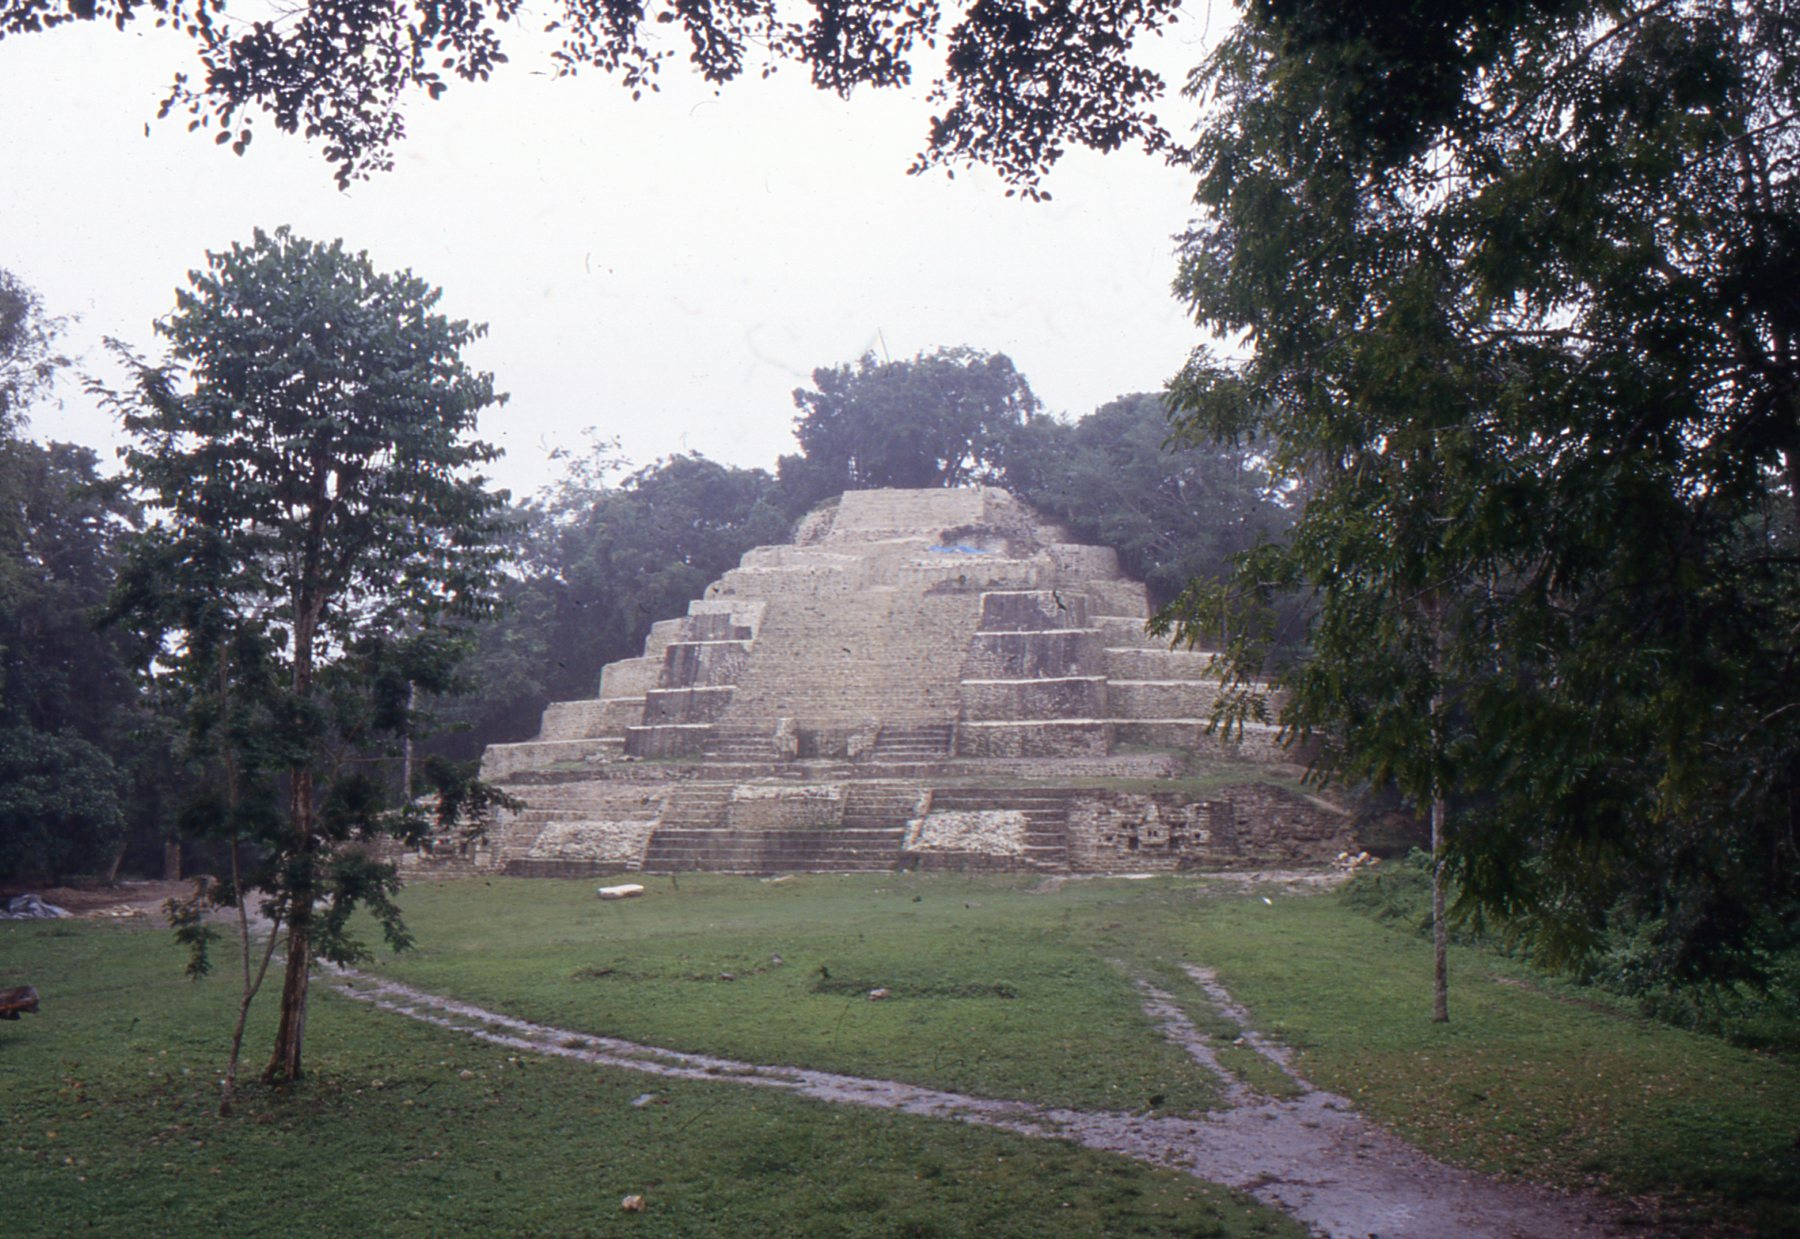 The mighty Jaguar Temple rises proudly from its jungle surroundings at Lamanai.